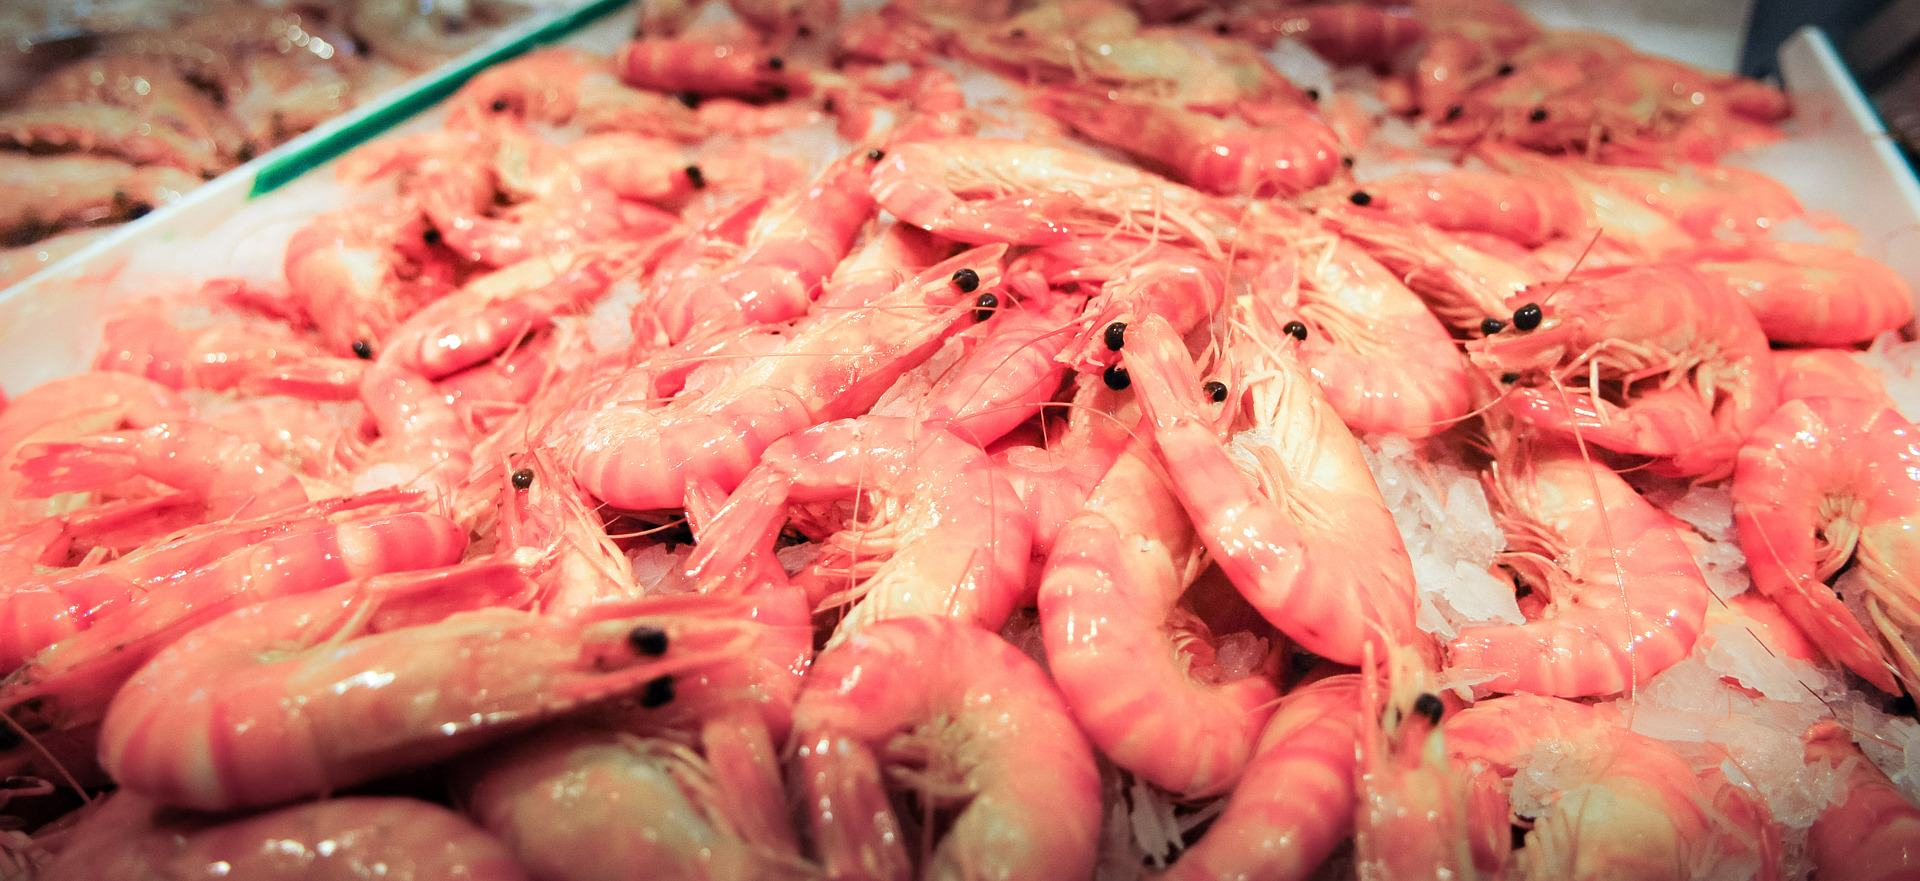 Antidumping duties imposed on shrimp imports from Brazil, China, Ecuador, India, Thailand, and Vietnam